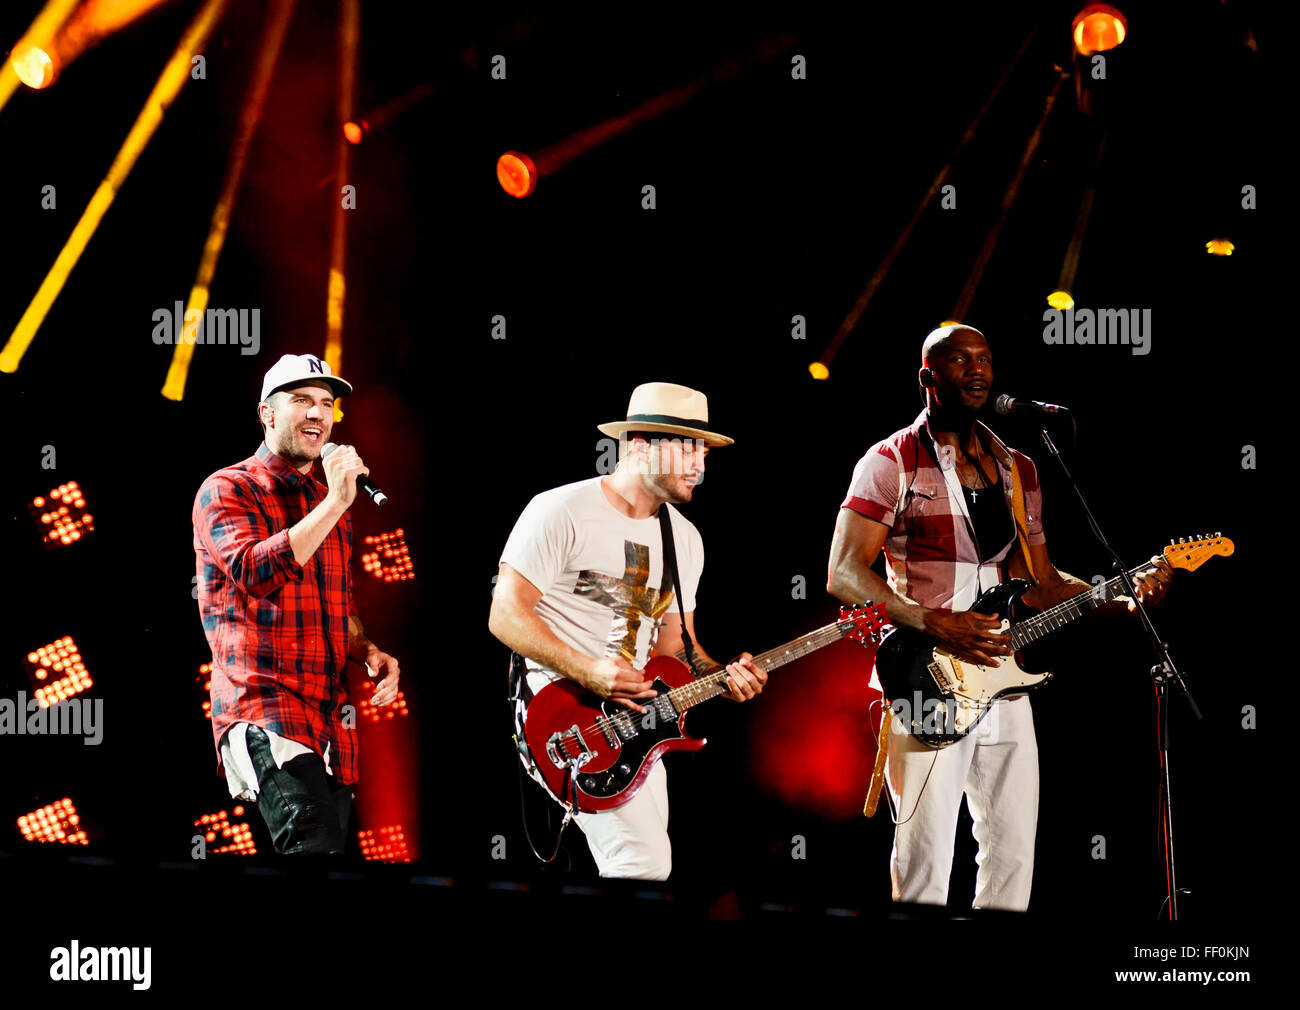 Sam Hunt Performing at the CMA Music Festival in Nashville Tennessee - Stock Image